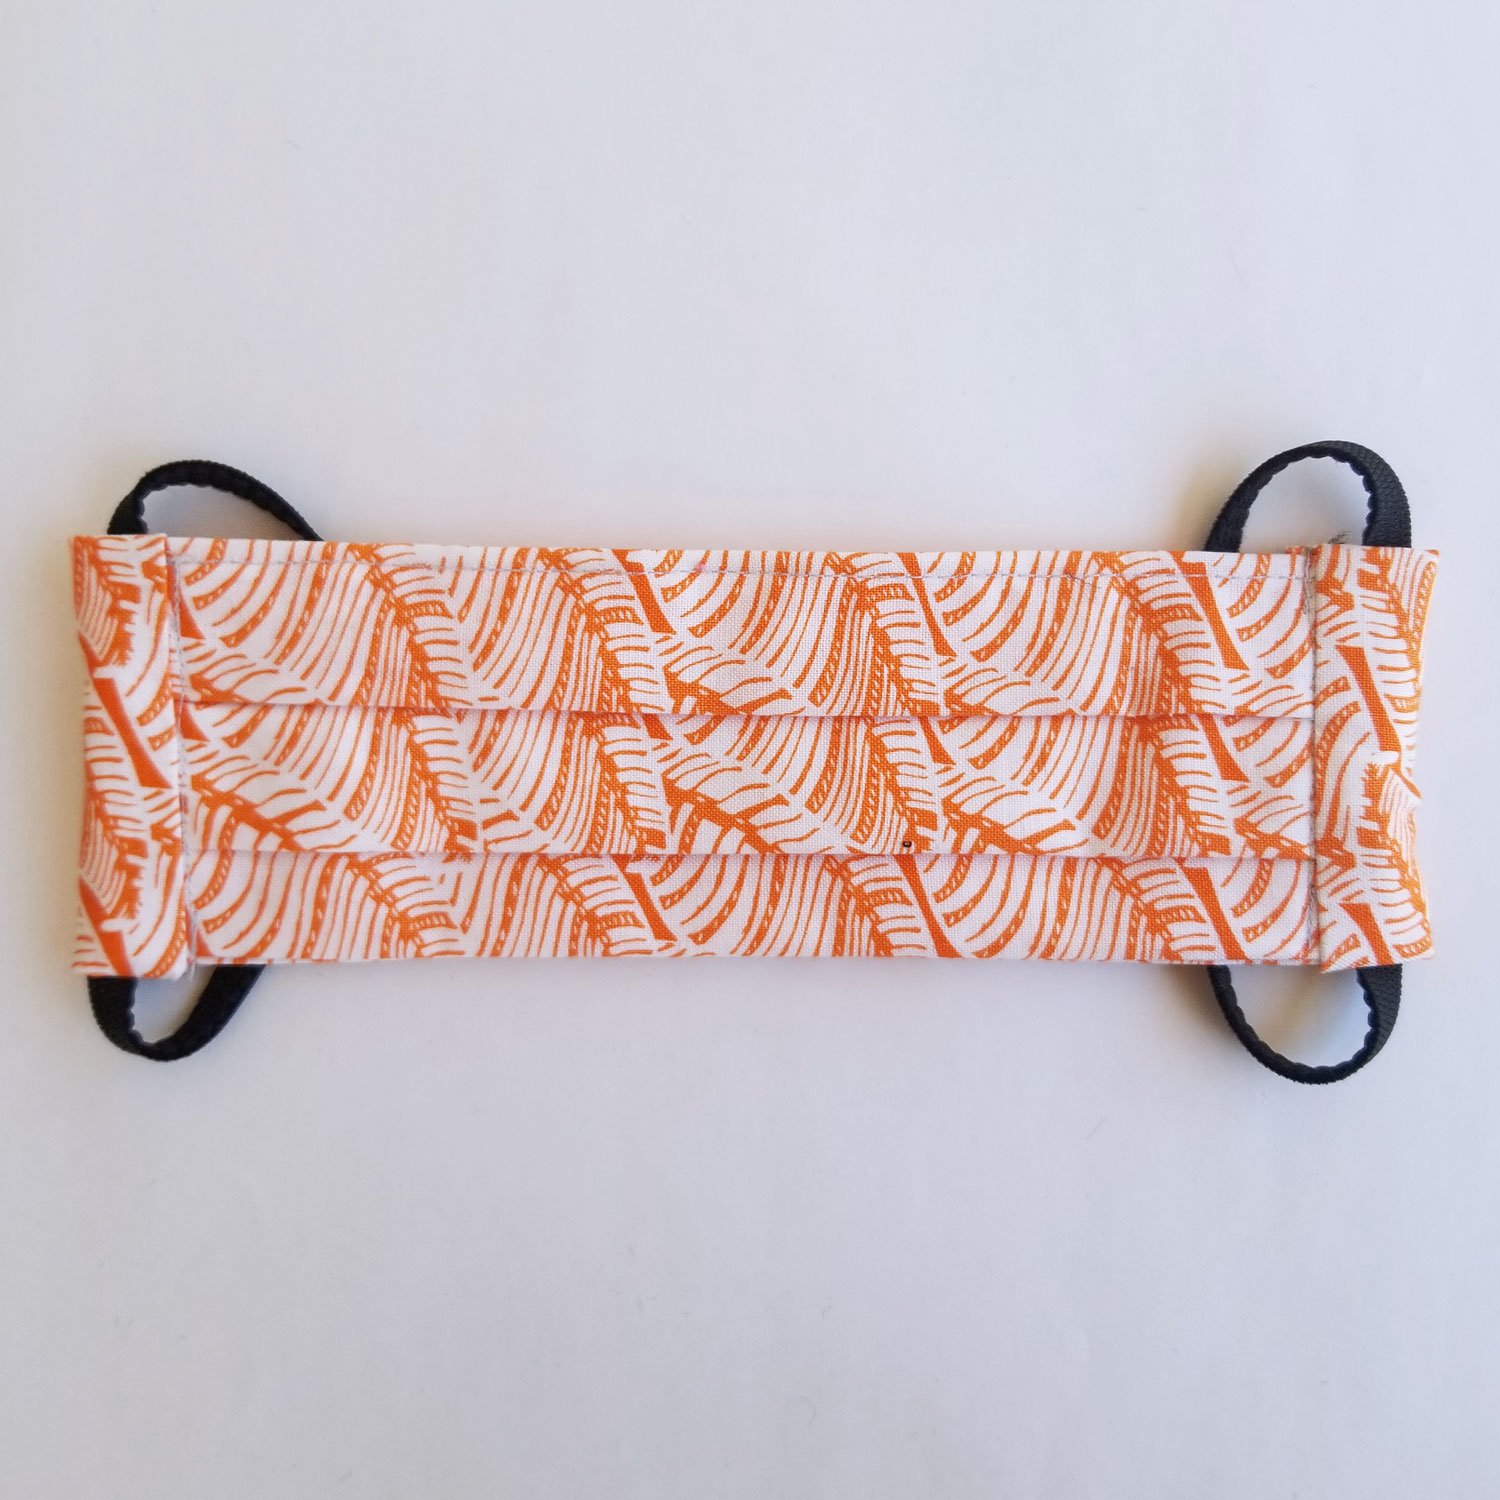 Handmade fabric mask in orange and white leaves print